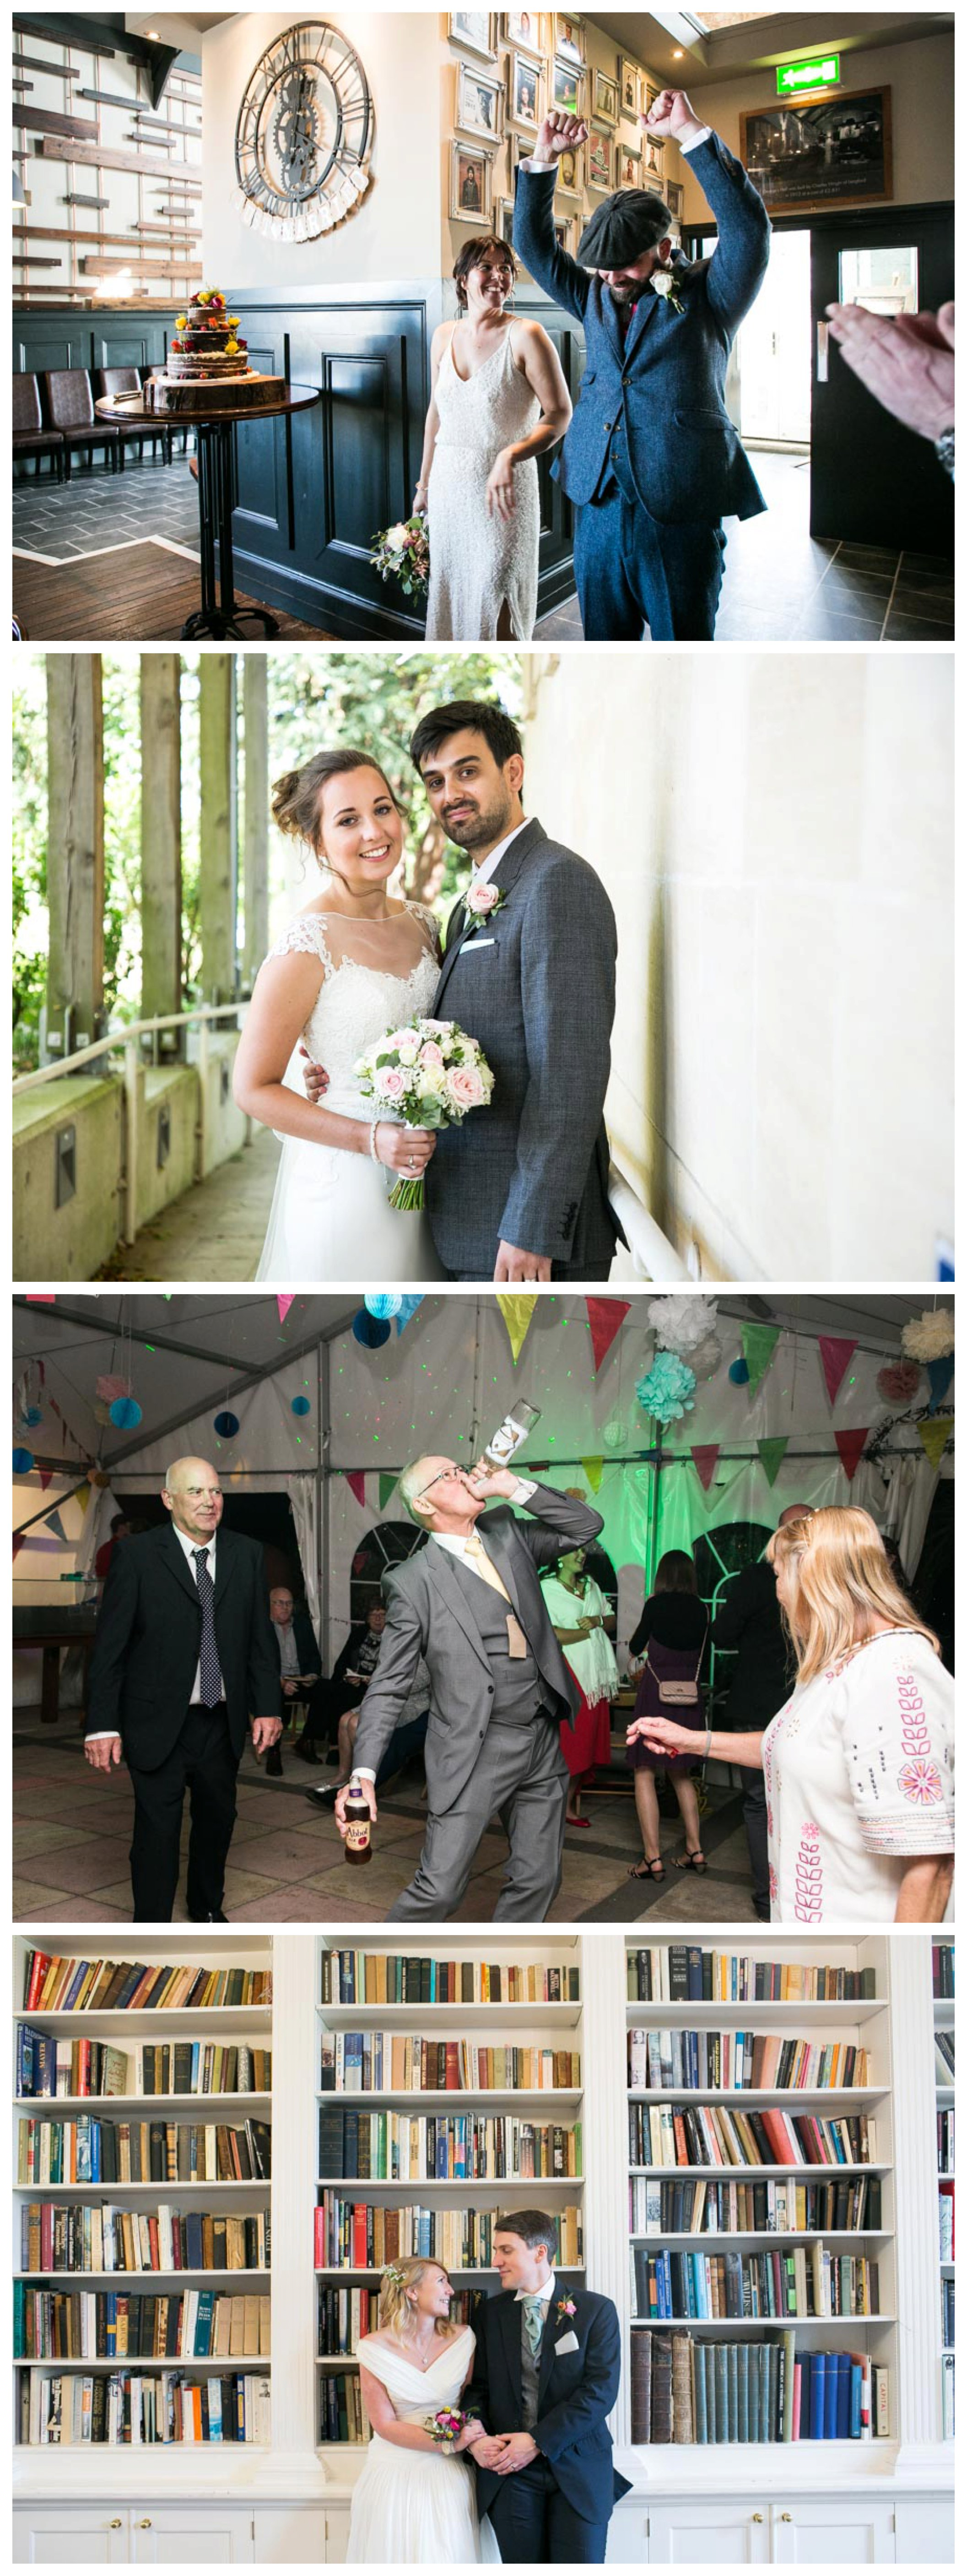 documentary weddng photography, dancing and in a library